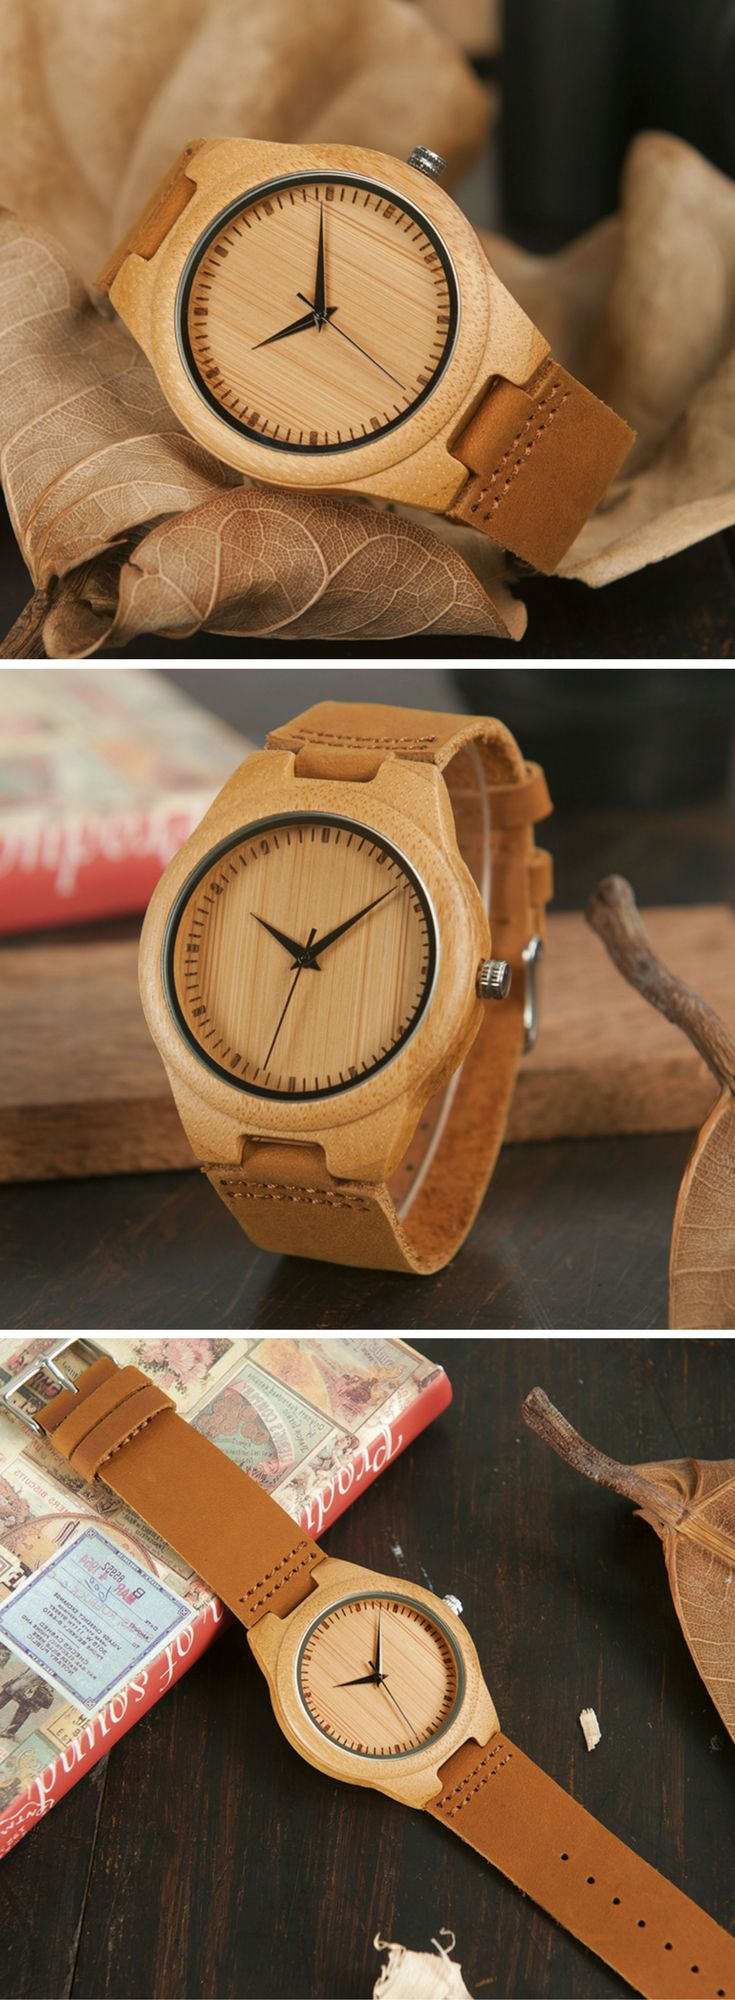 A classy men's watch made from bamboo & leather | www.arborcouture.com | men's watch leather, men's watch leather brown, men's watch leather black, men's watch leather simple, men's watch leather life, men's watch leather classy, men's watch leather casual, men's watch leather affordable, men's watch leather classic, men's watch leather fashion, men's watch leather style, men's watch leather awesome, men's watch leather products, men's watch leather accessories | #menswatches